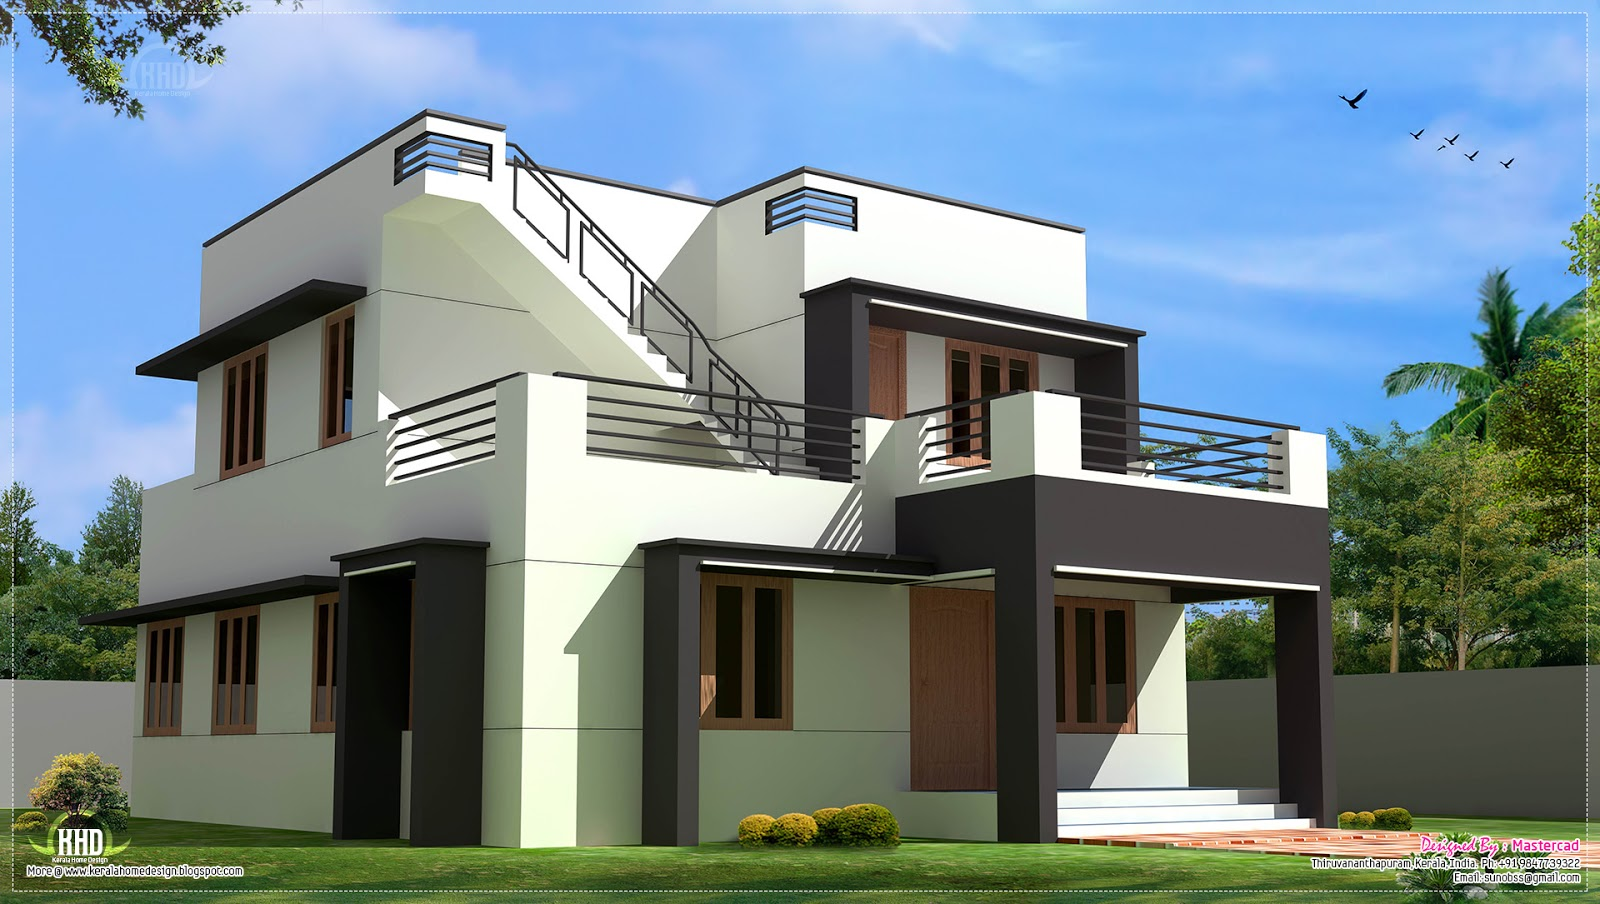 Modern house design in 1700 kerala home design for Modern house designs and floor plans